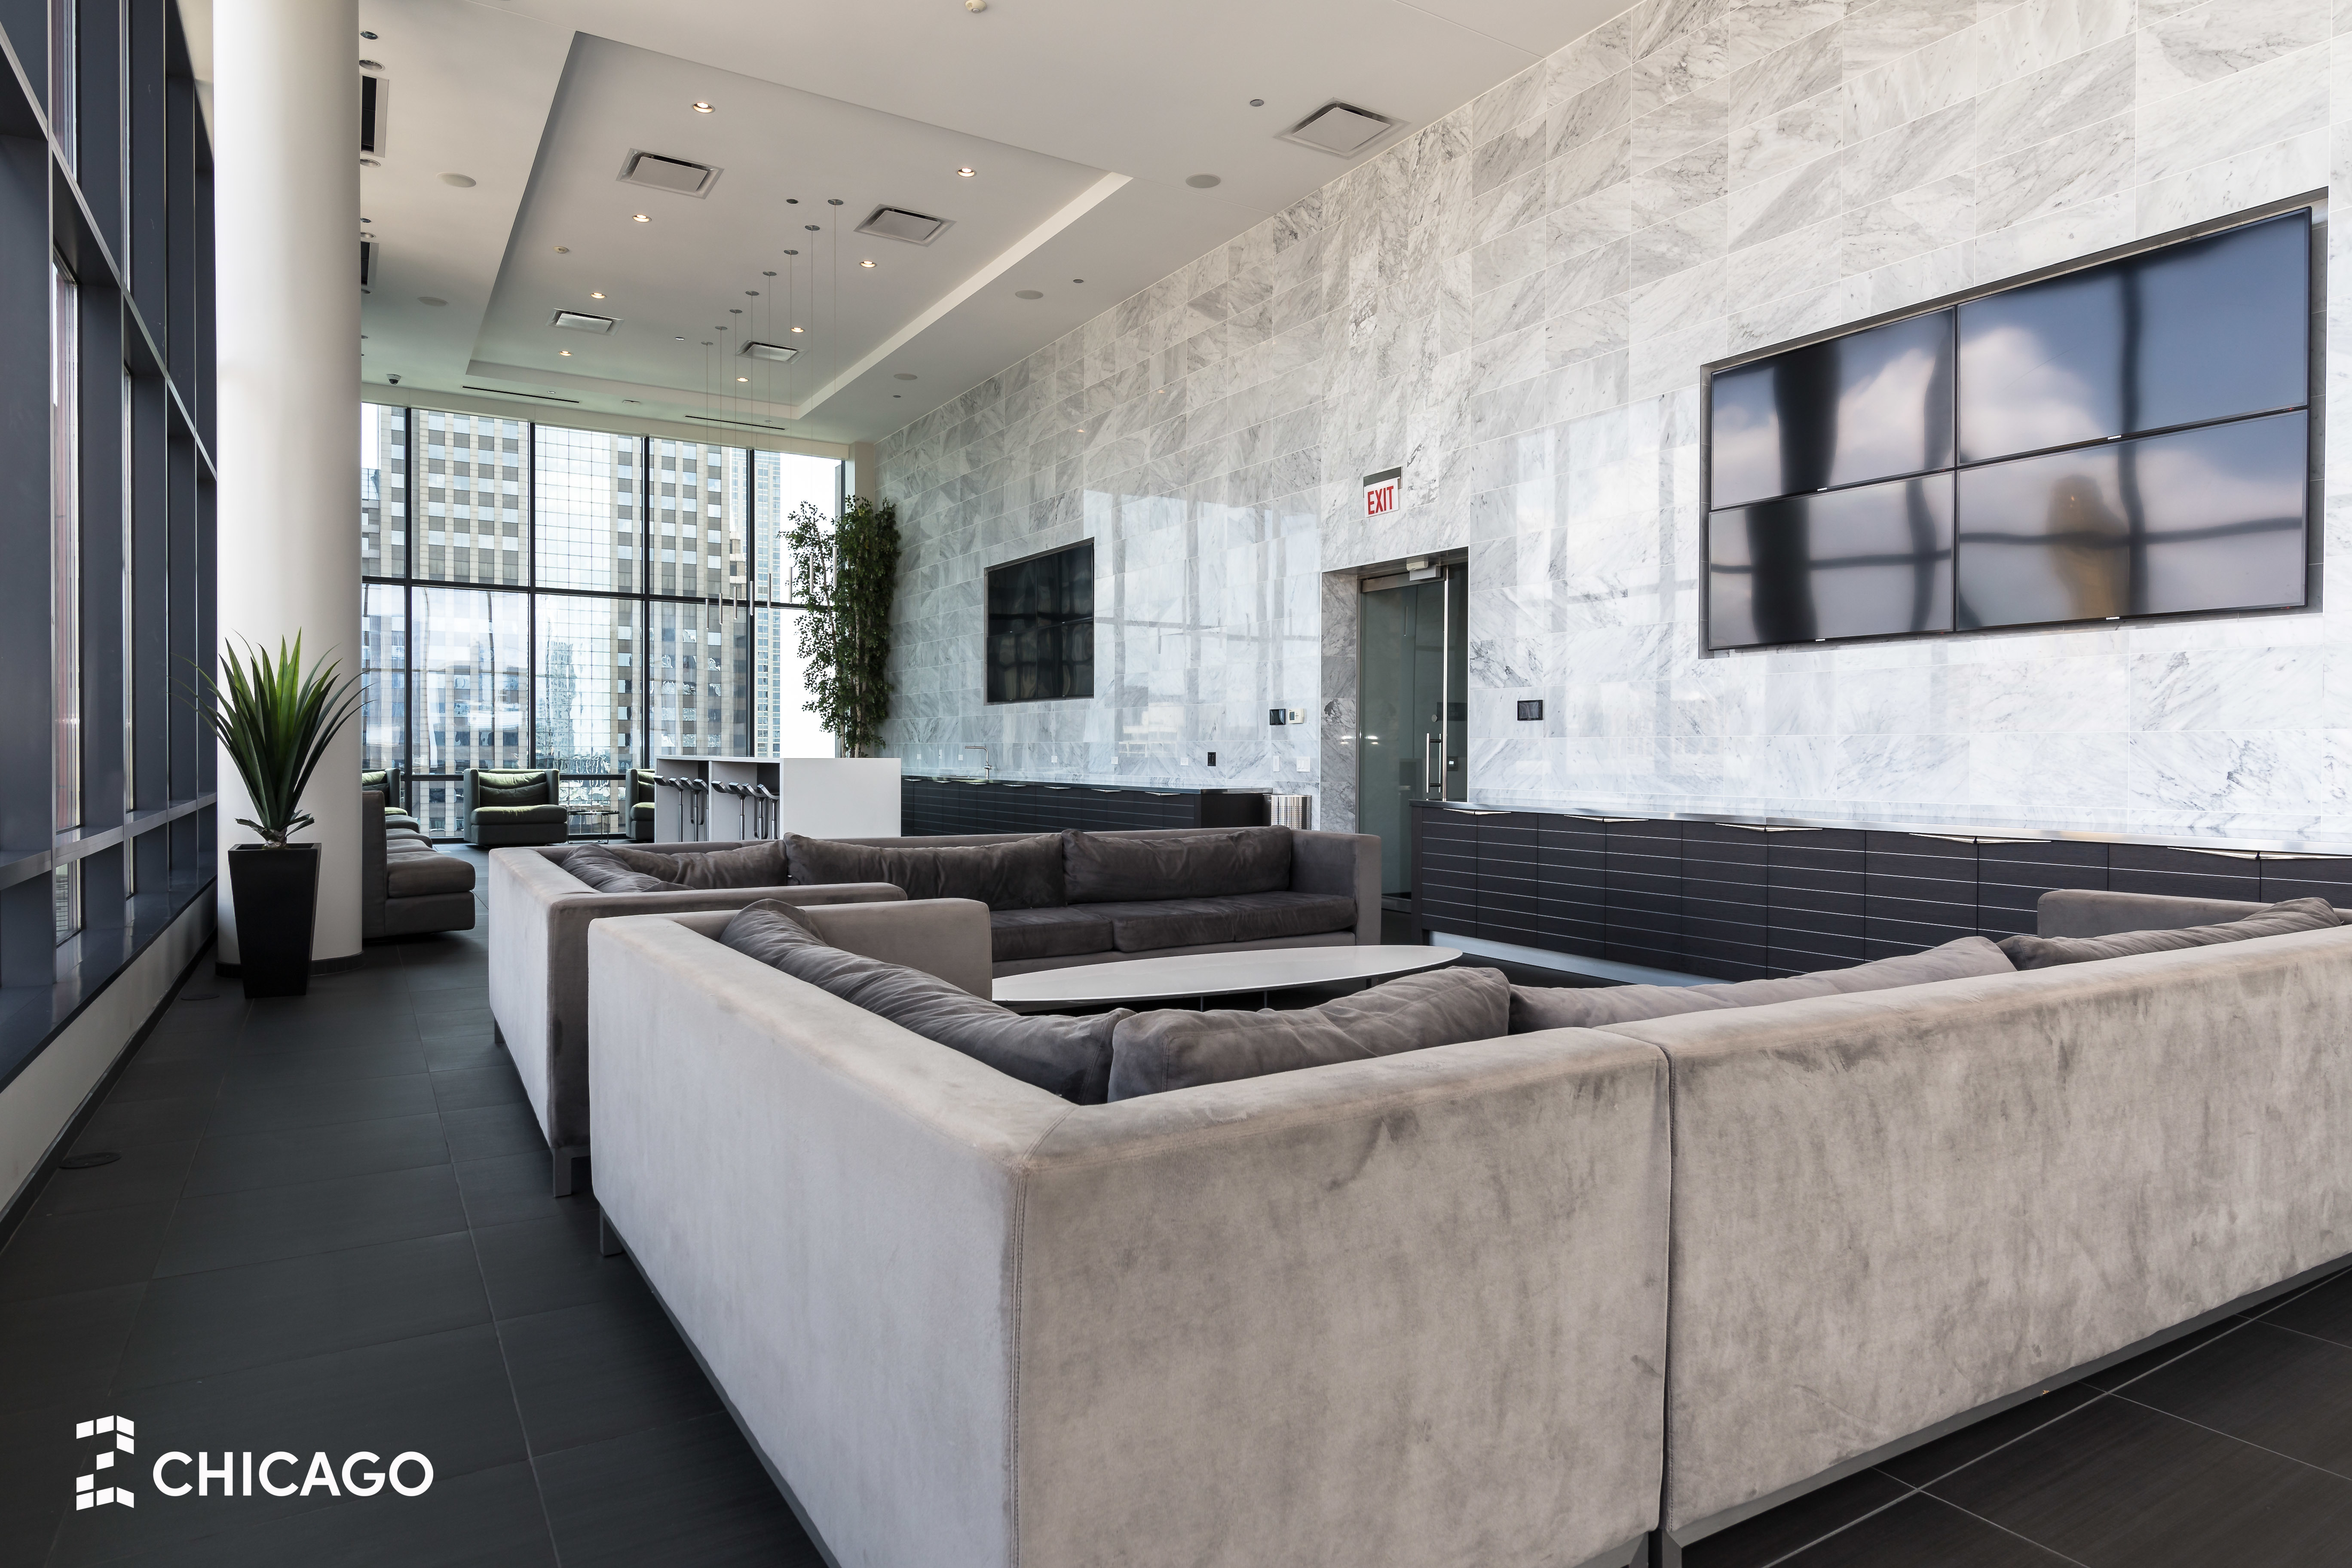 Top Rated Chicago Apartment Amenities River North Streeterville The Loop Z Chicago Compass